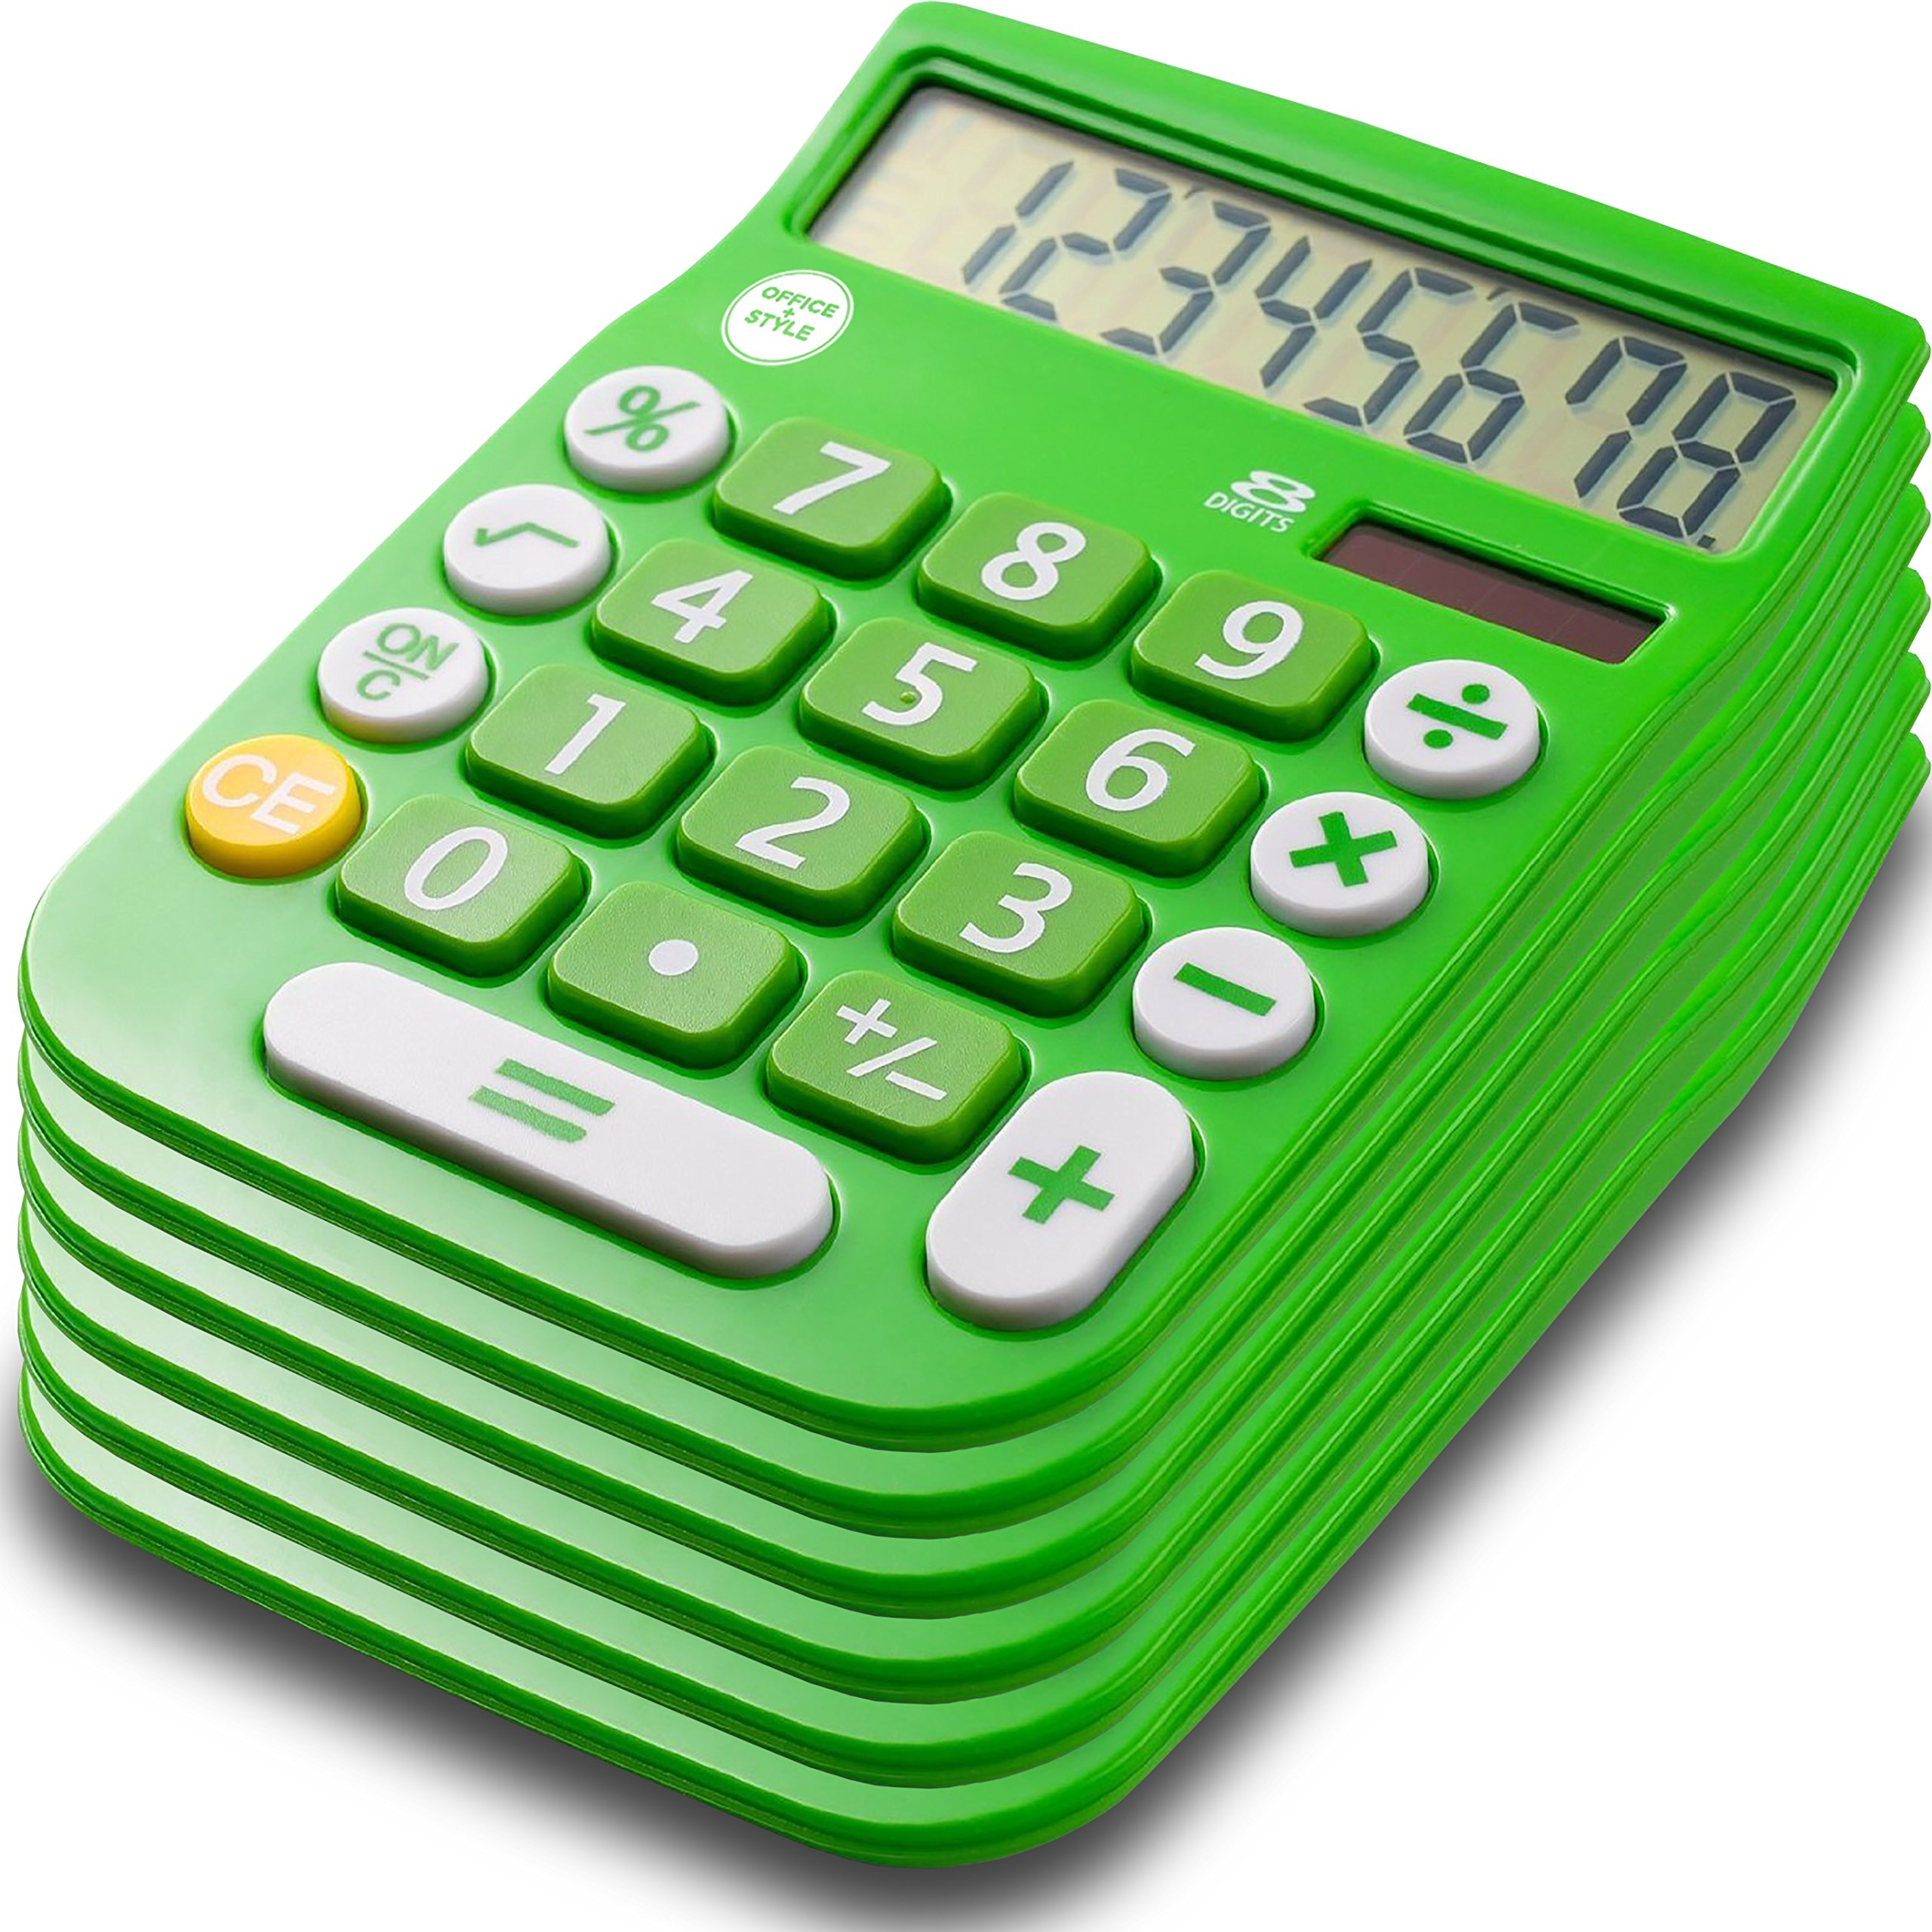 Office + Style 8 Digit Dual Powered Calculator with Large LCD Display, Green (Pack of 6) by Office + Style